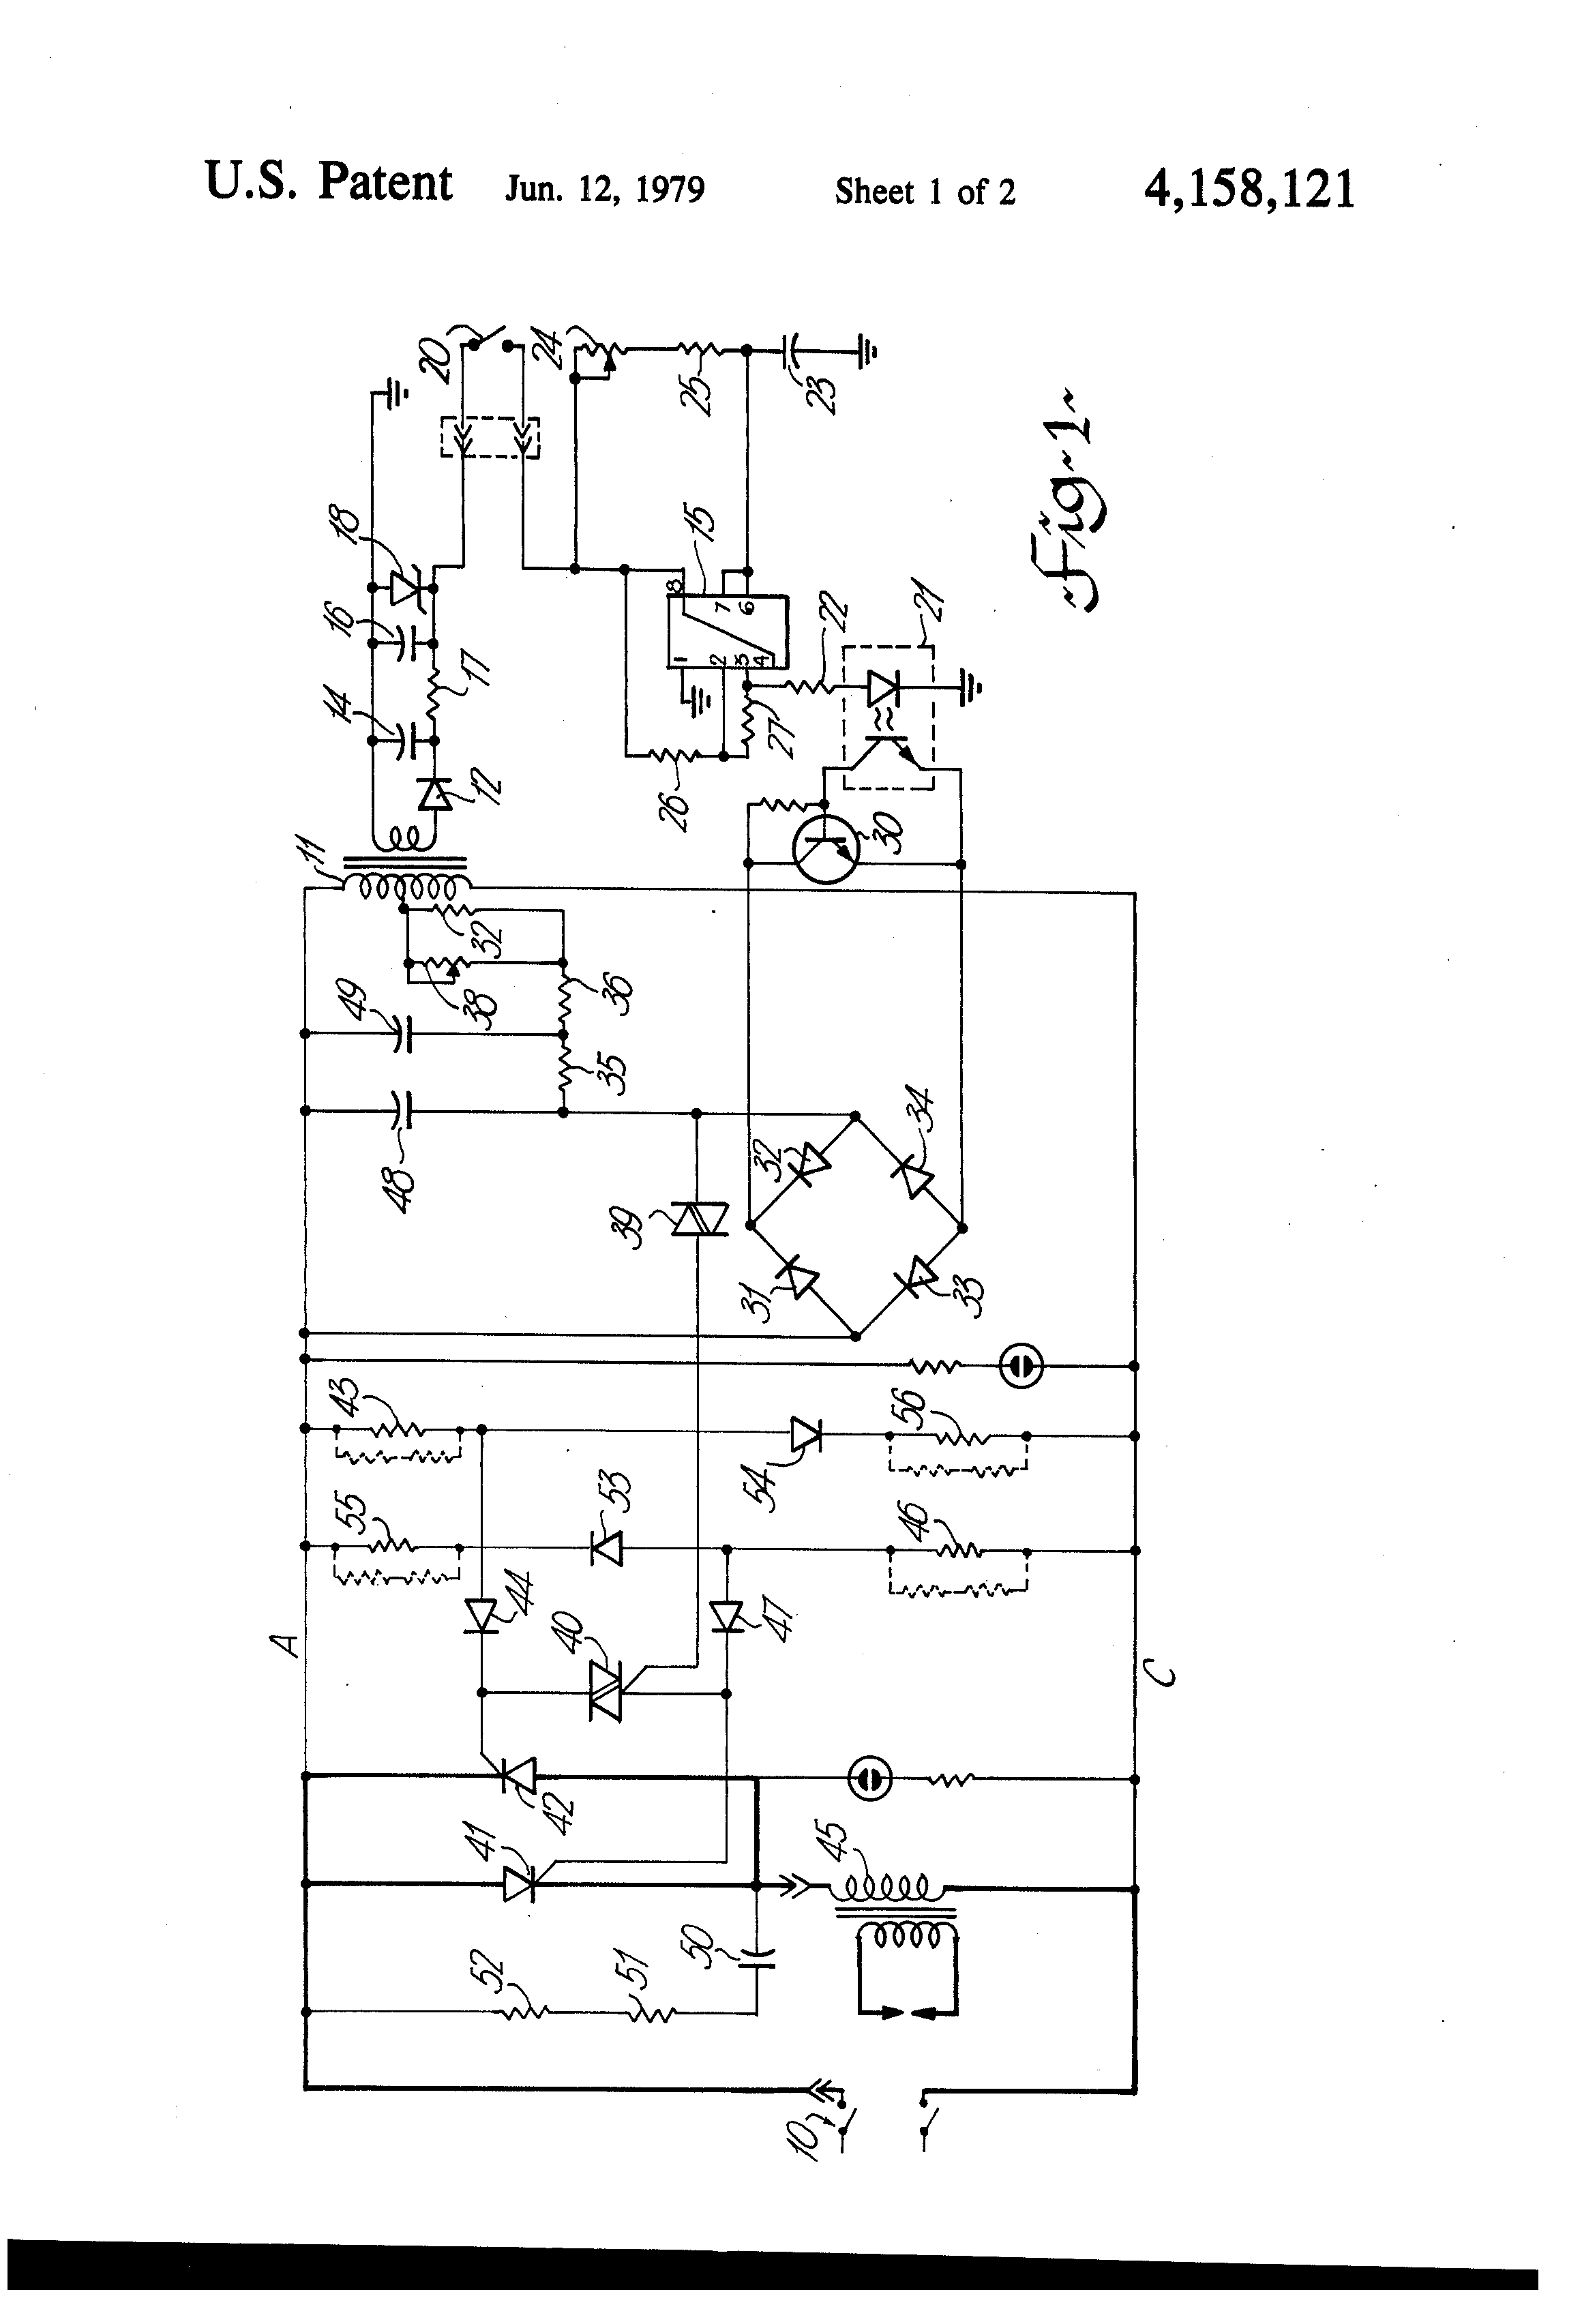 Spot Welder Wiring Diagram : 26 Wiring Diagram Images